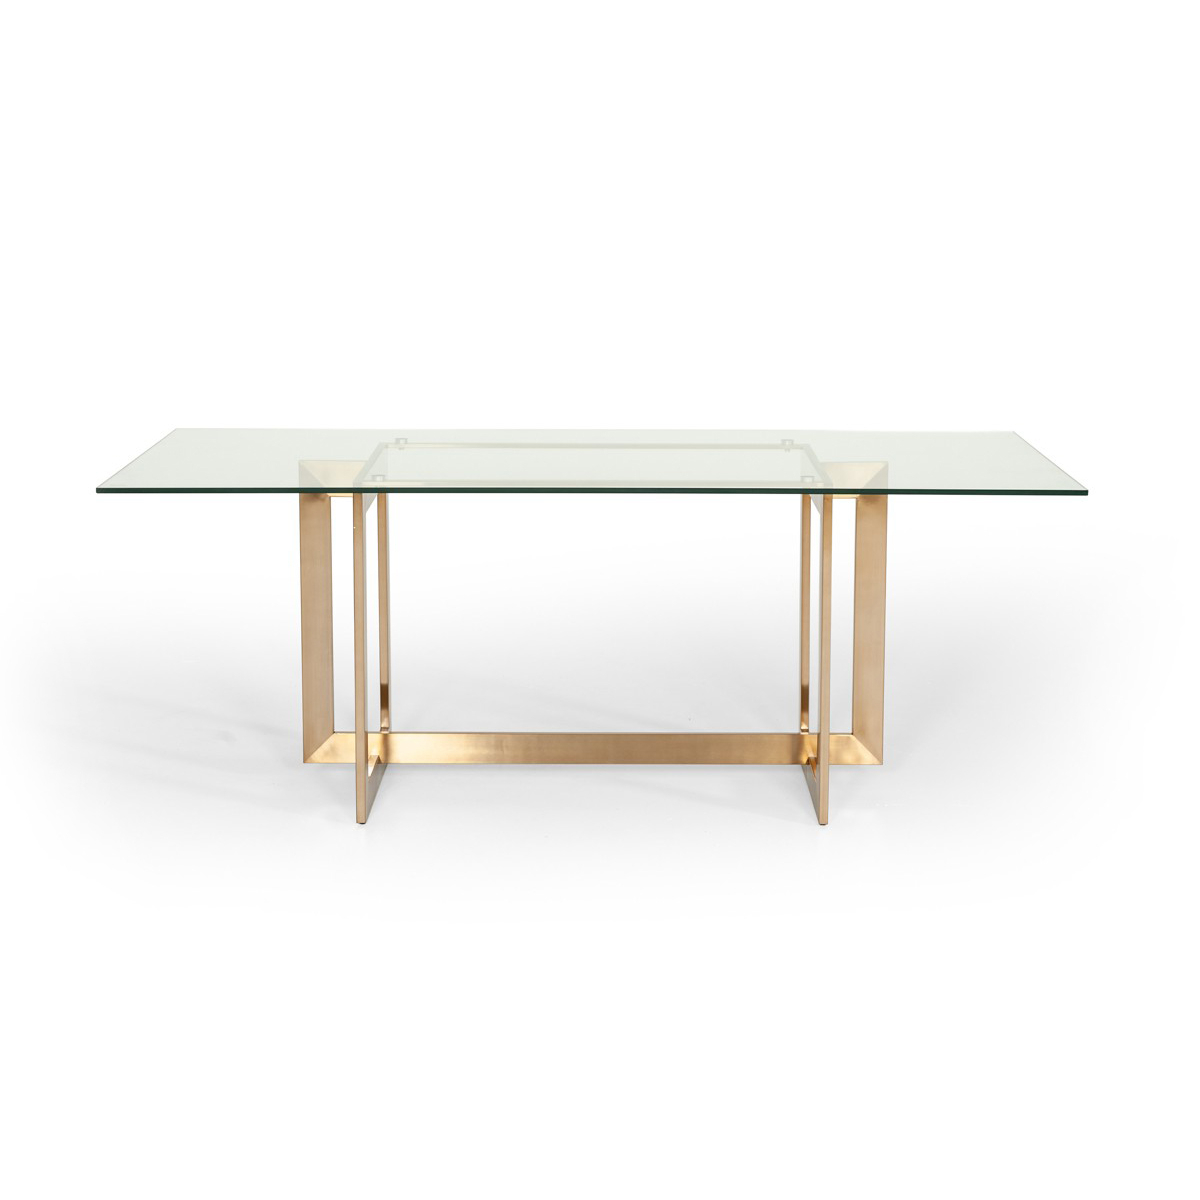 Event Trade Show Furniture Rental With Regard To 2020 Dining Tables With Brushed Gold Stainless Finish (View 8 of 25)